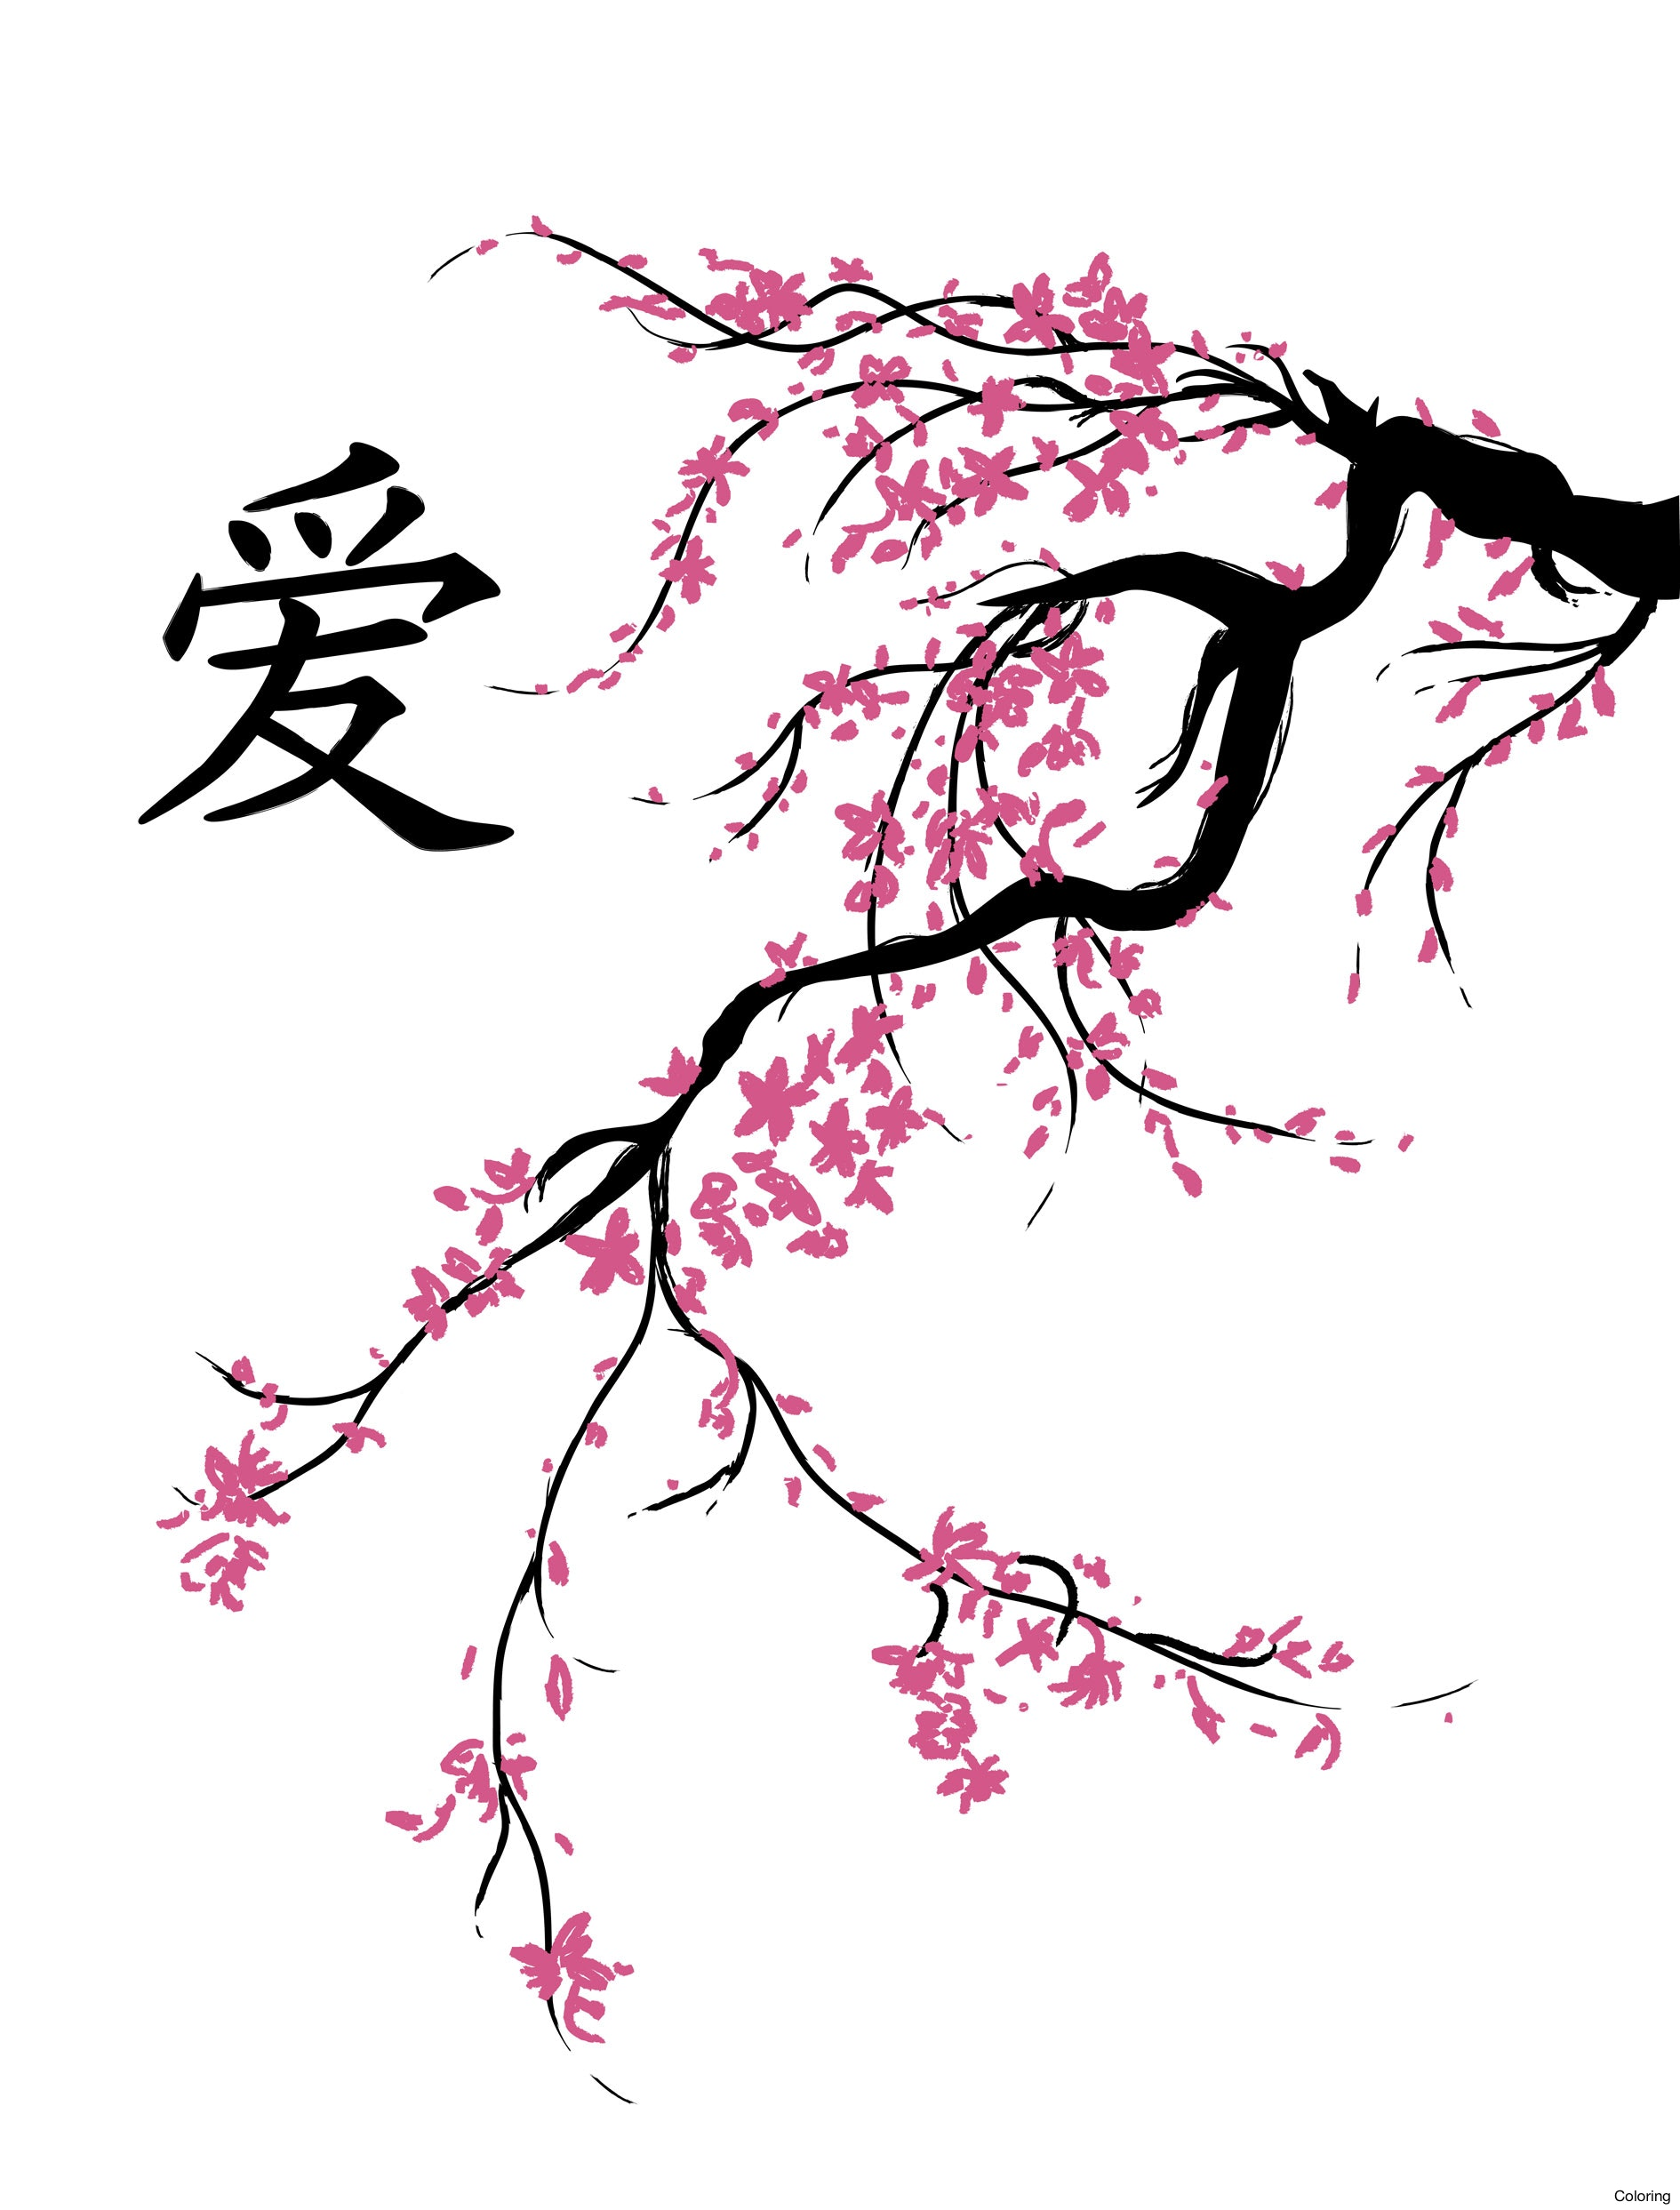 cherry blossom branch drawing at getdrawings com free for personal